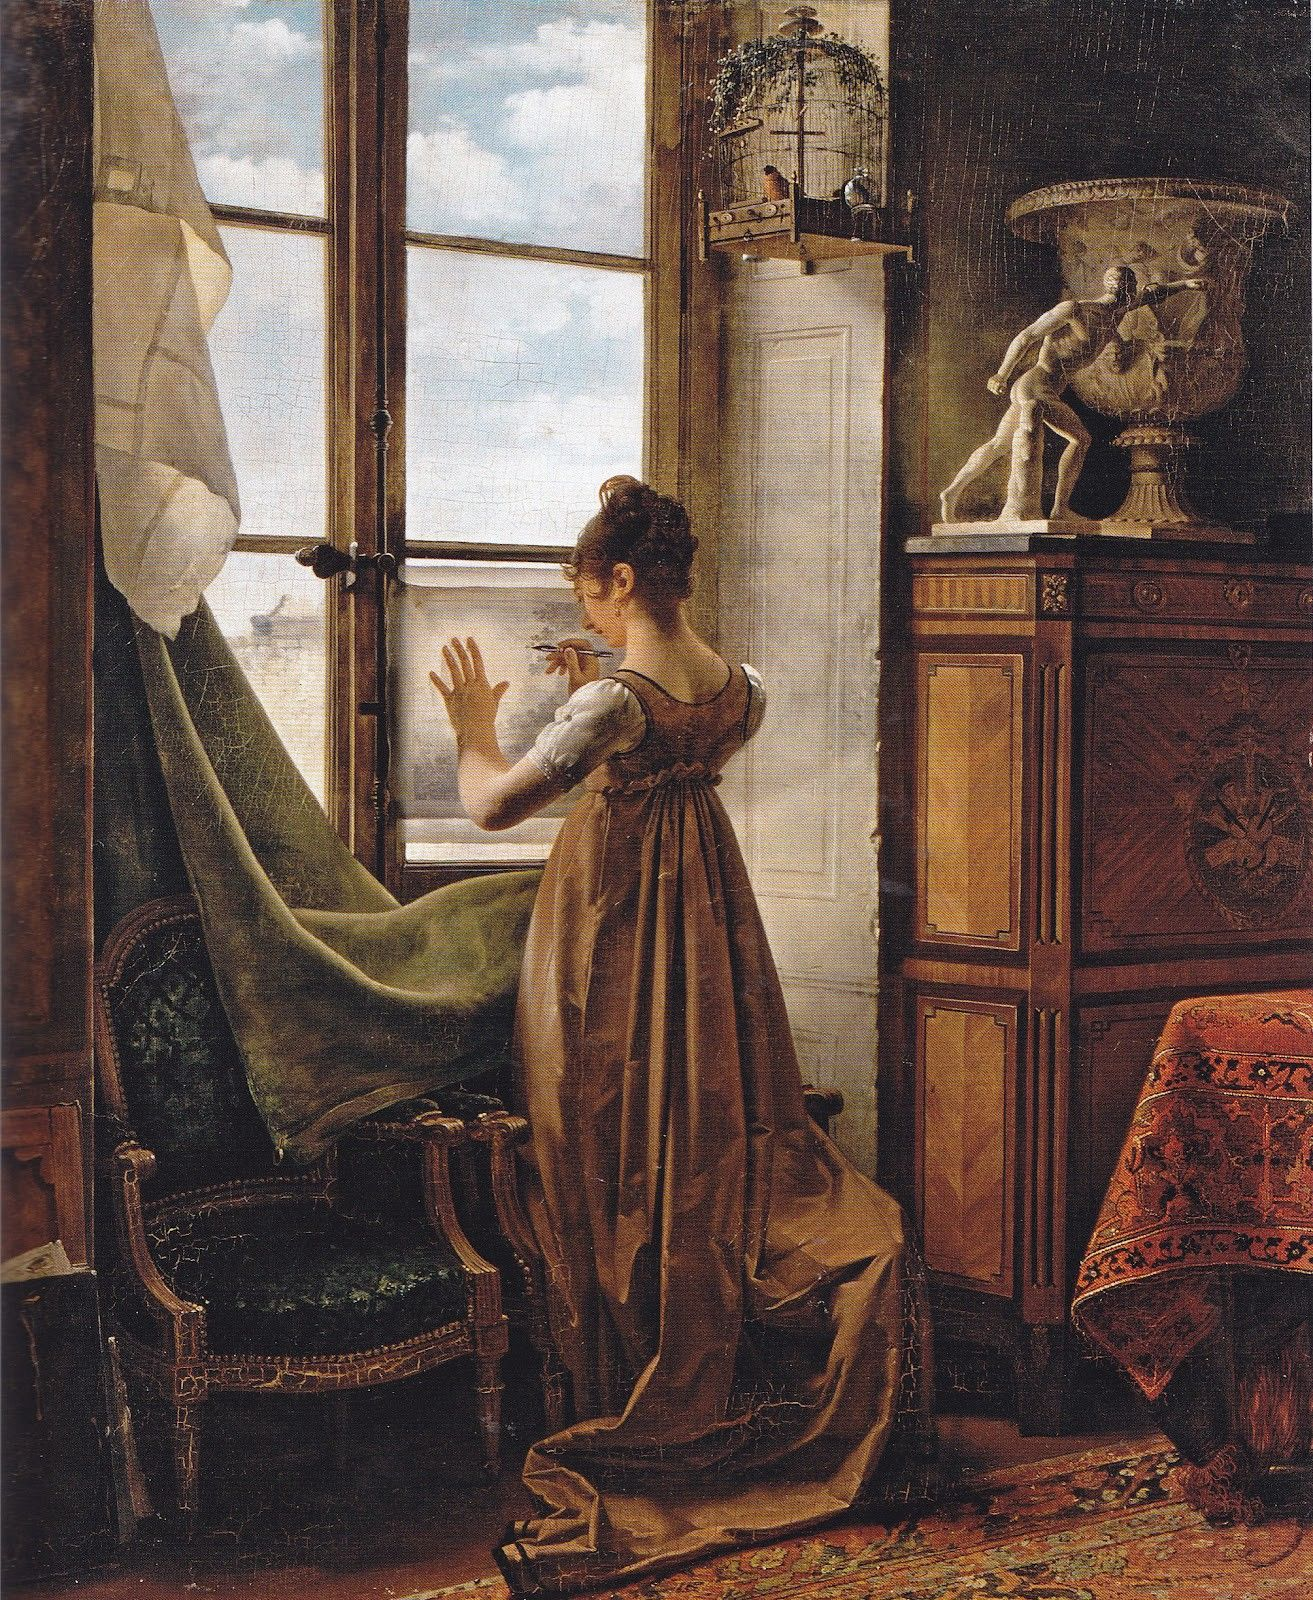 WOMAN AT A WINDOW 1822 ROMANTIC ERA PAINTING BY CASPAR DAVID FRIEDRICH REPRO